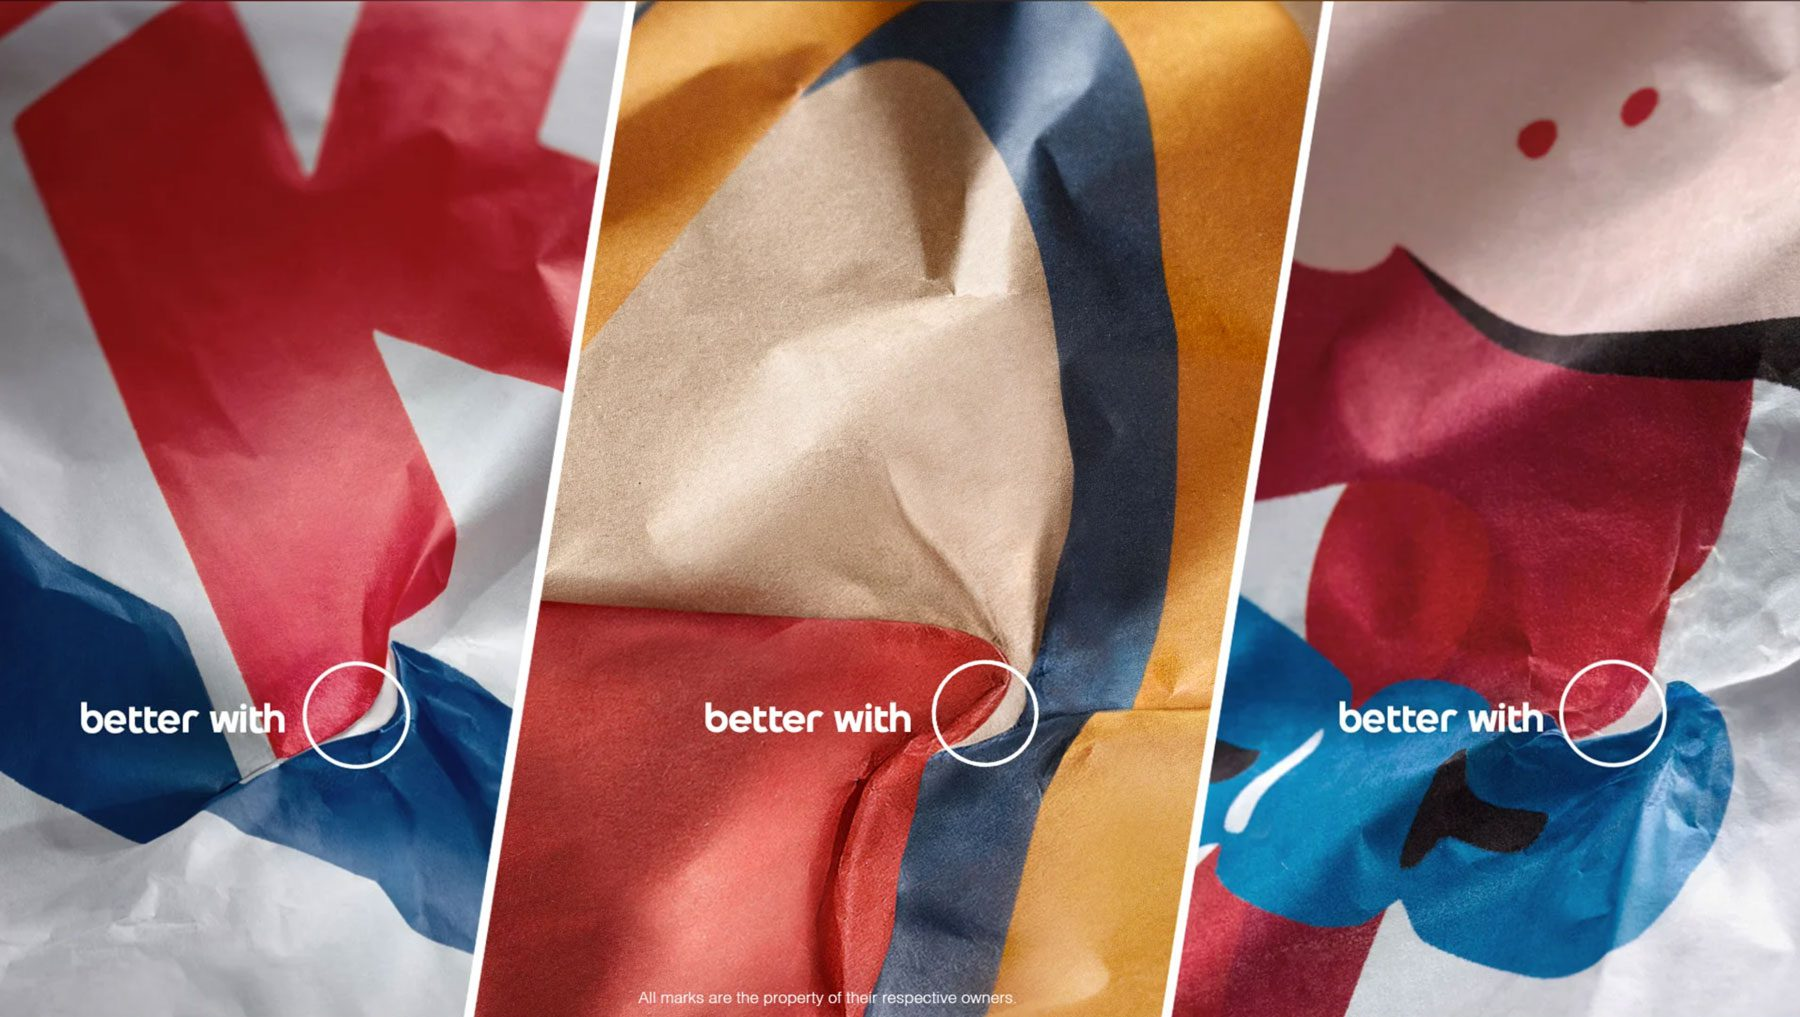 Better with Pepsi